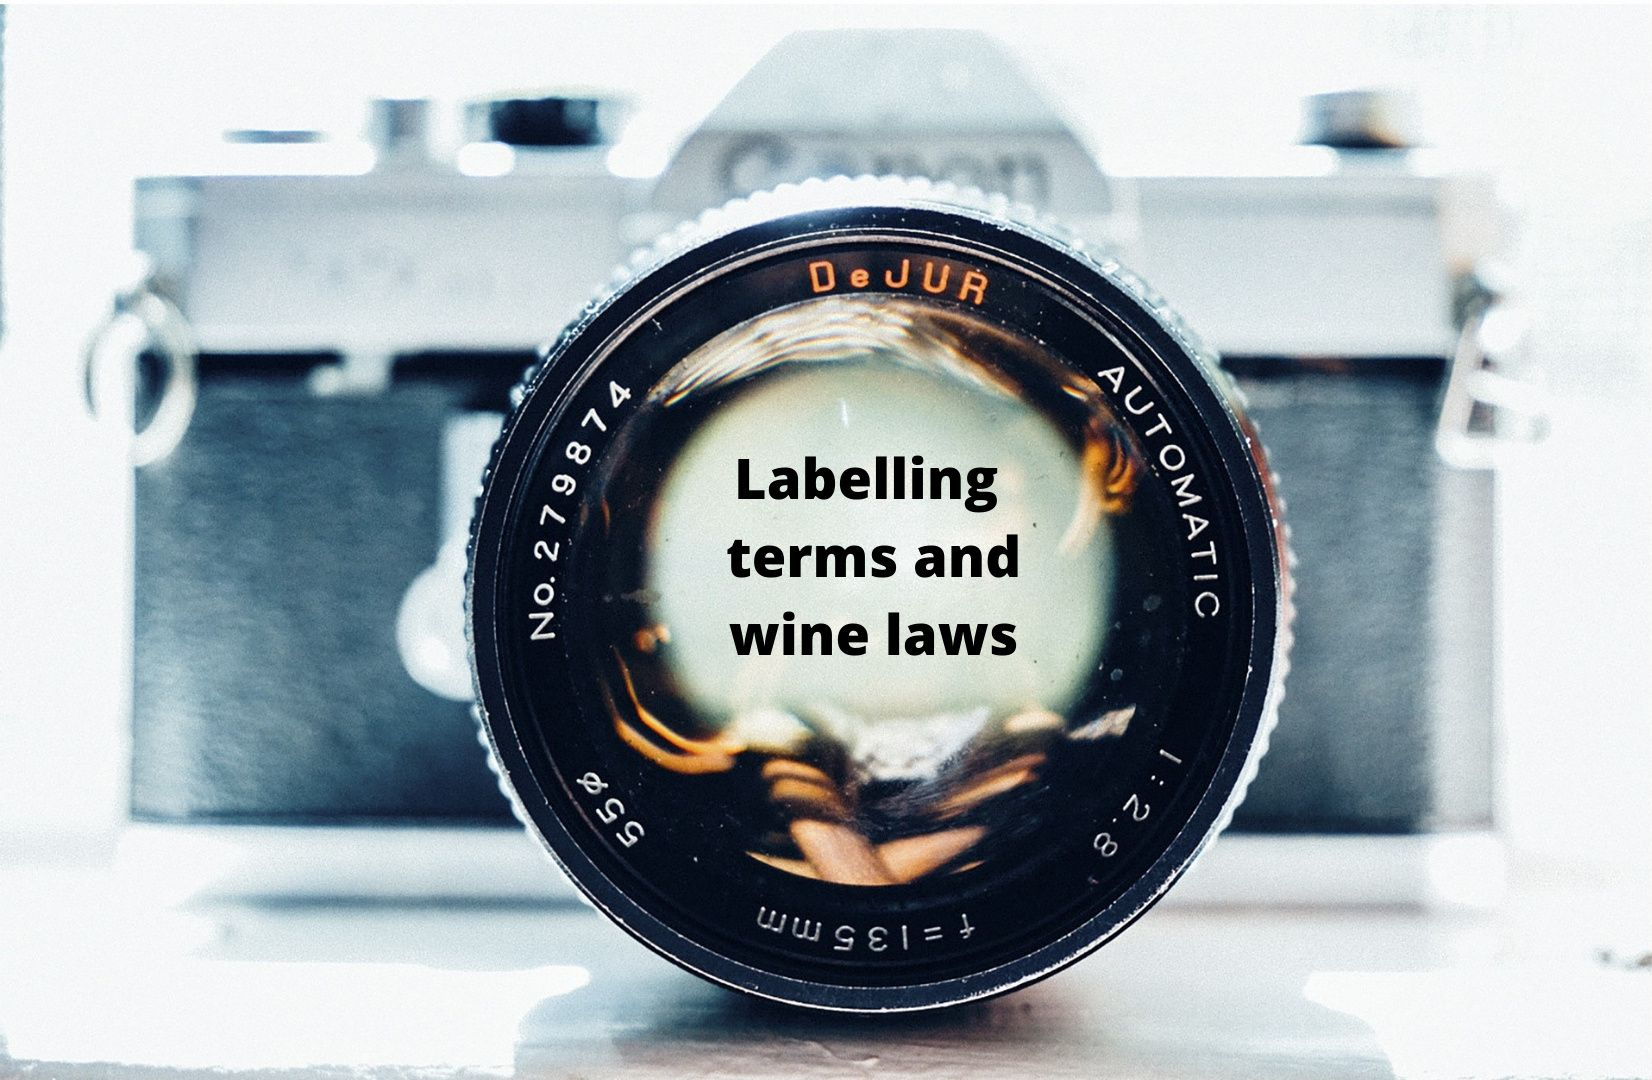 Camera lens with text